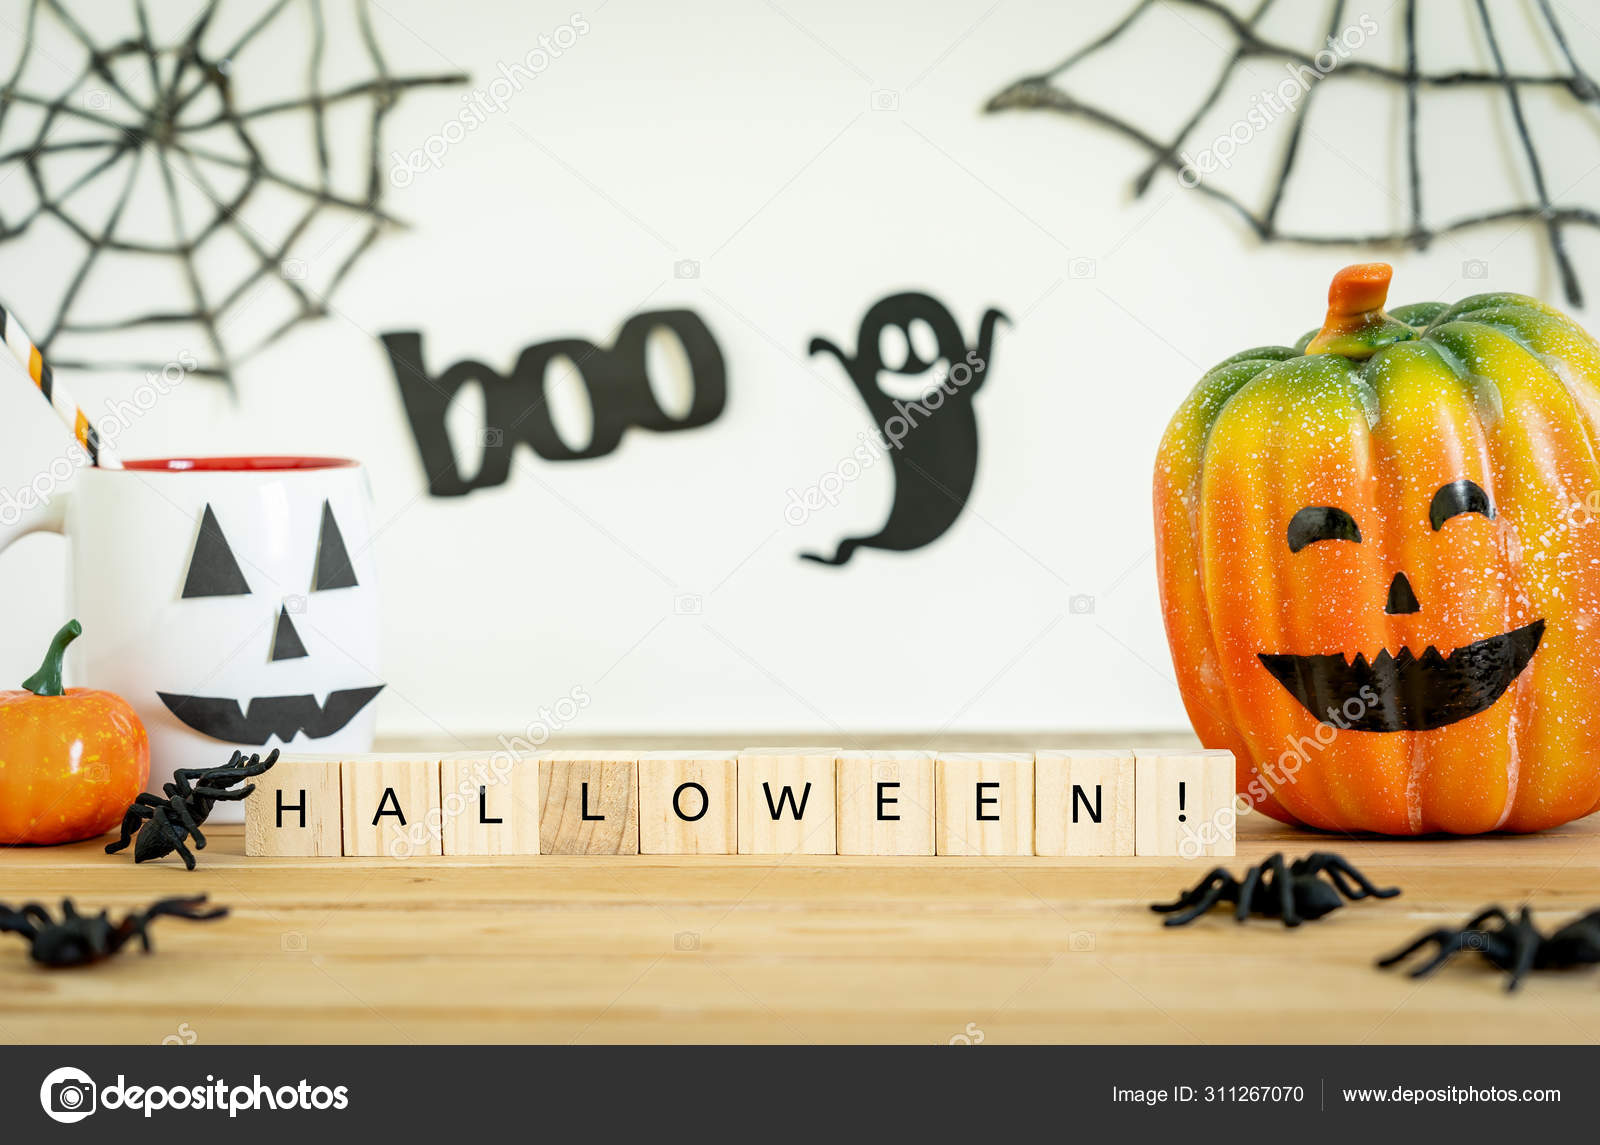 Halloween Pumpkin Accessories.Accessories Decorations Happy Halloween Day Background Concept Cup Drink Pumpkin Stock Photo Image By C Osaba Stock 311267070